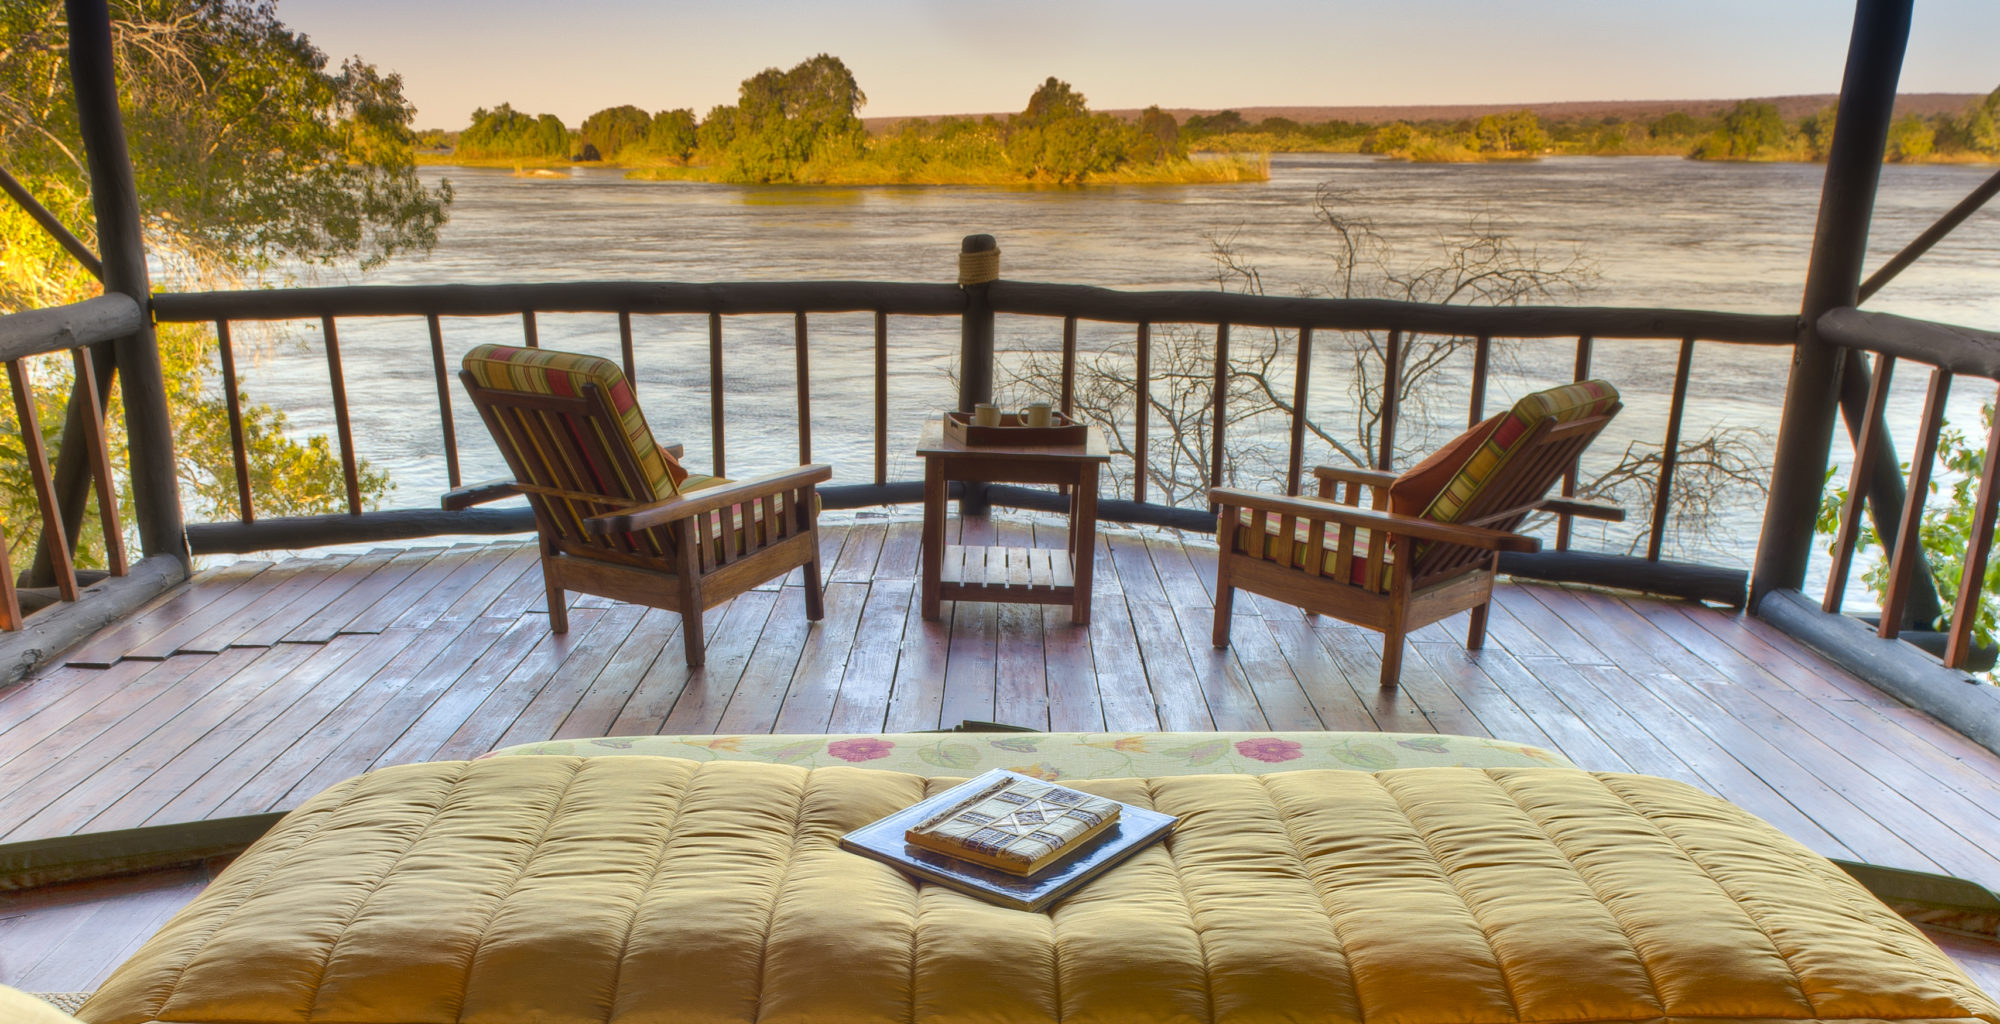 Island-of-Siankaba-Zambia Room with a view 1